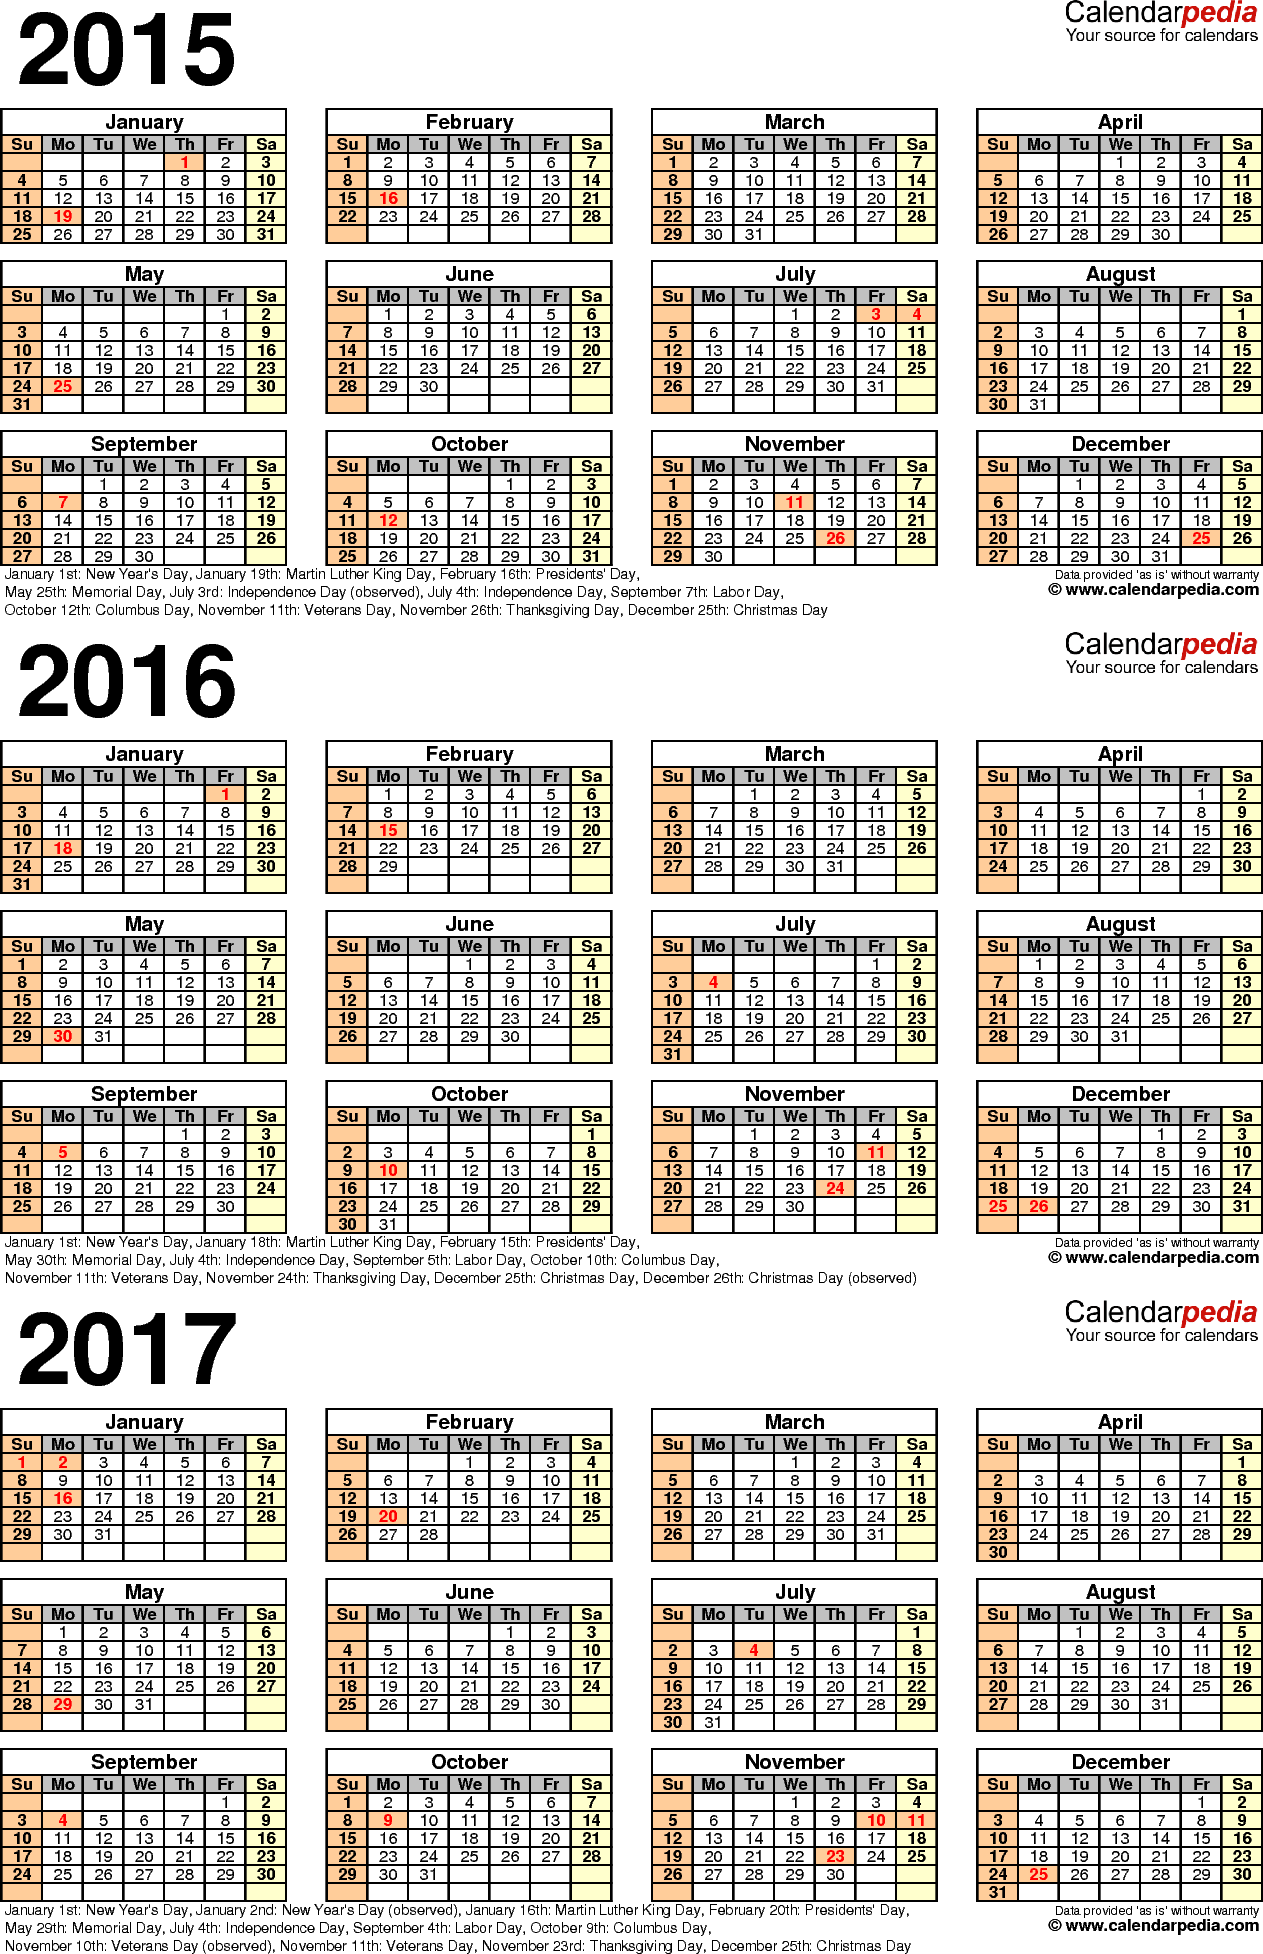 Template 4: PDF template for three year calendar 2015/2016/2017 (portrait orientation, 1 page)